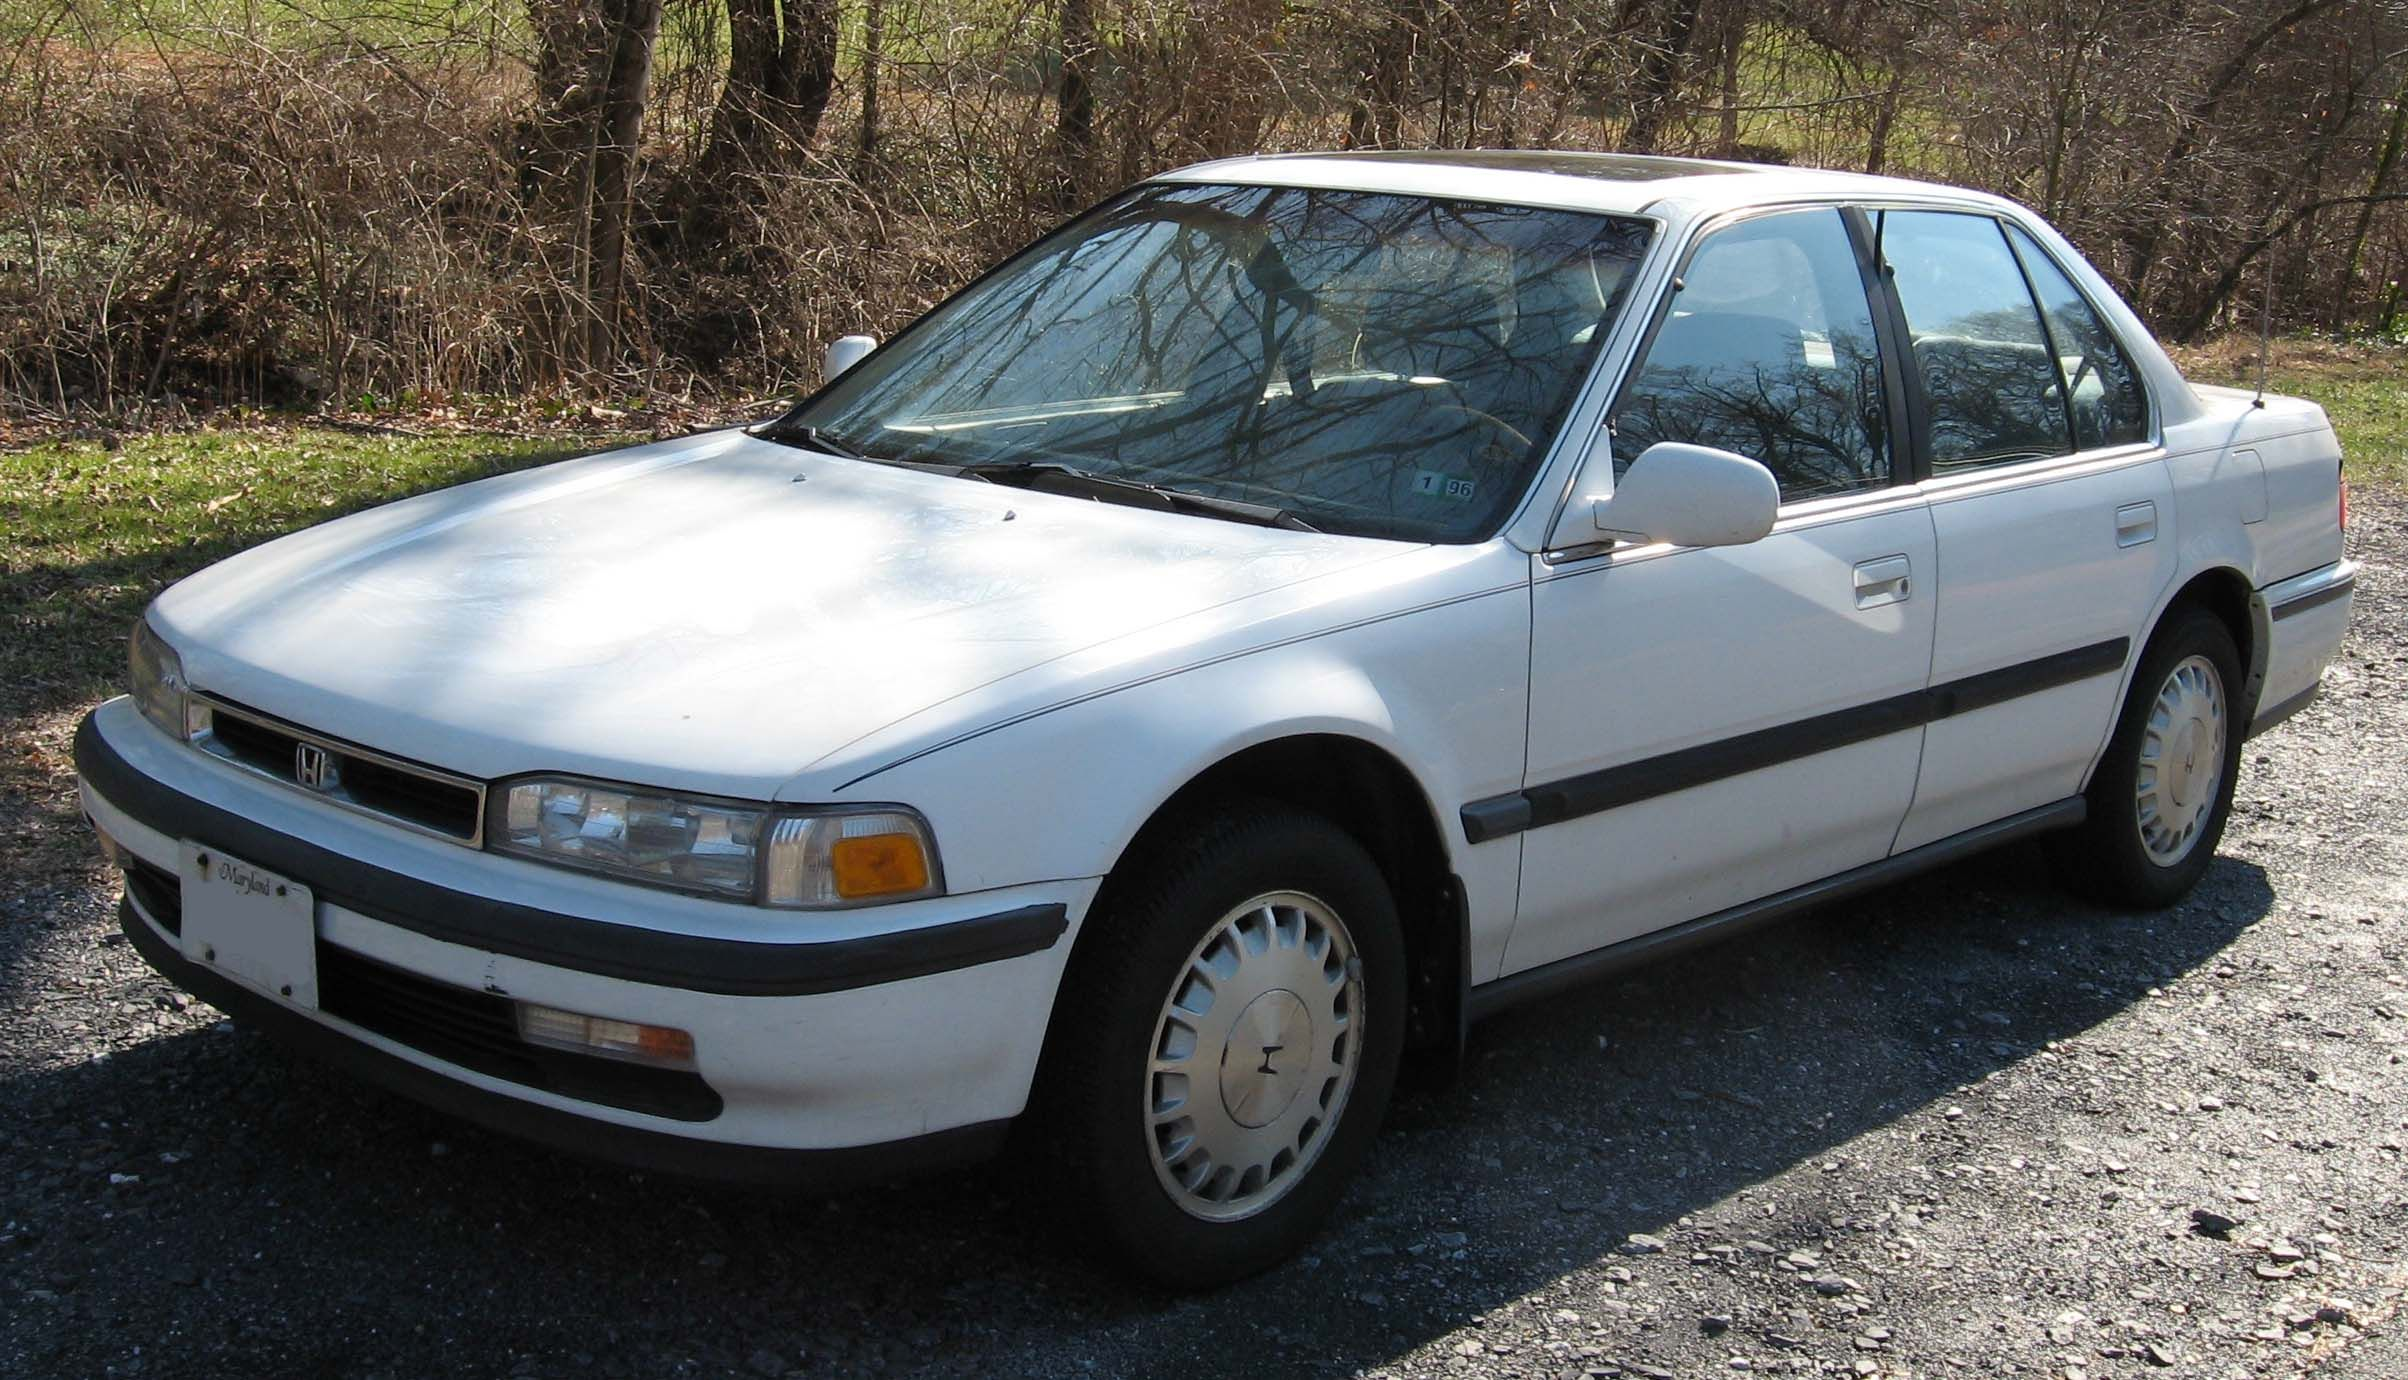 1990 Honda Accord Sedan   Honda Accord Sedan Car And Driver Capsule Review:  1990 1993 Honda Accord December 15th 2009 At 1:33 Pm; A 91 Accord Ex Was My  ...